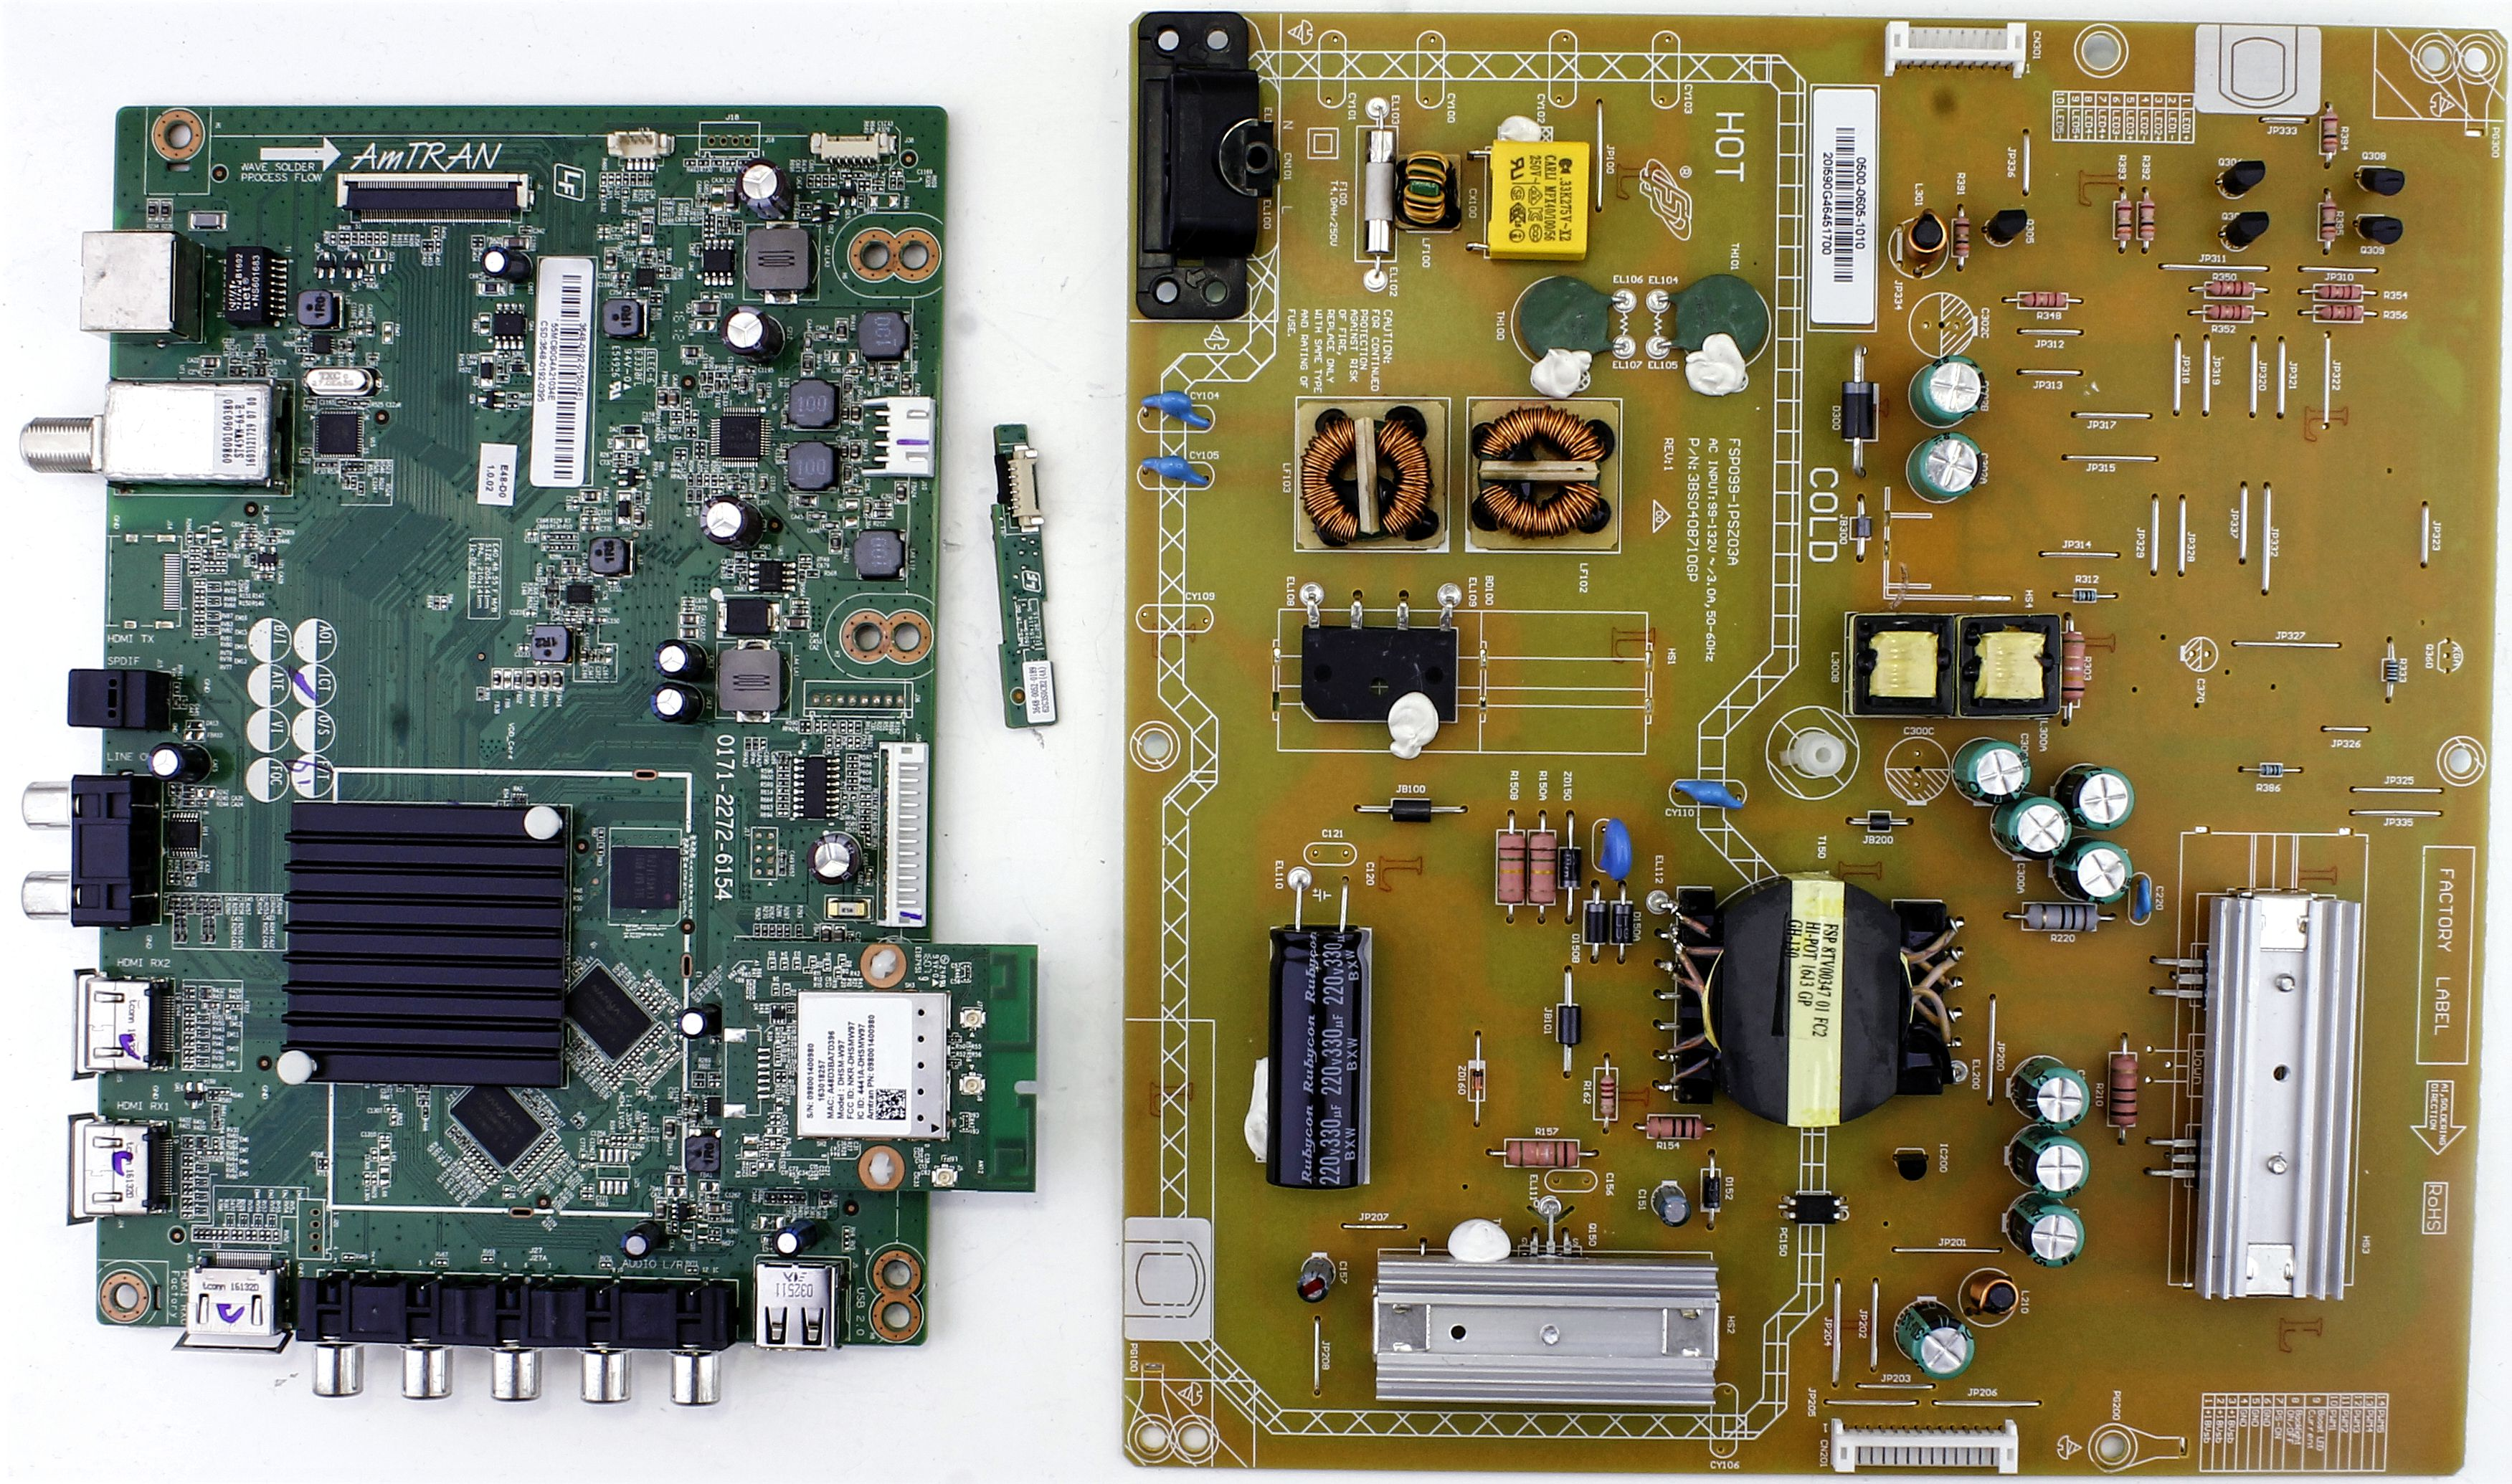 3648-0192-0395 Vizio board kit for TV model D48-D0